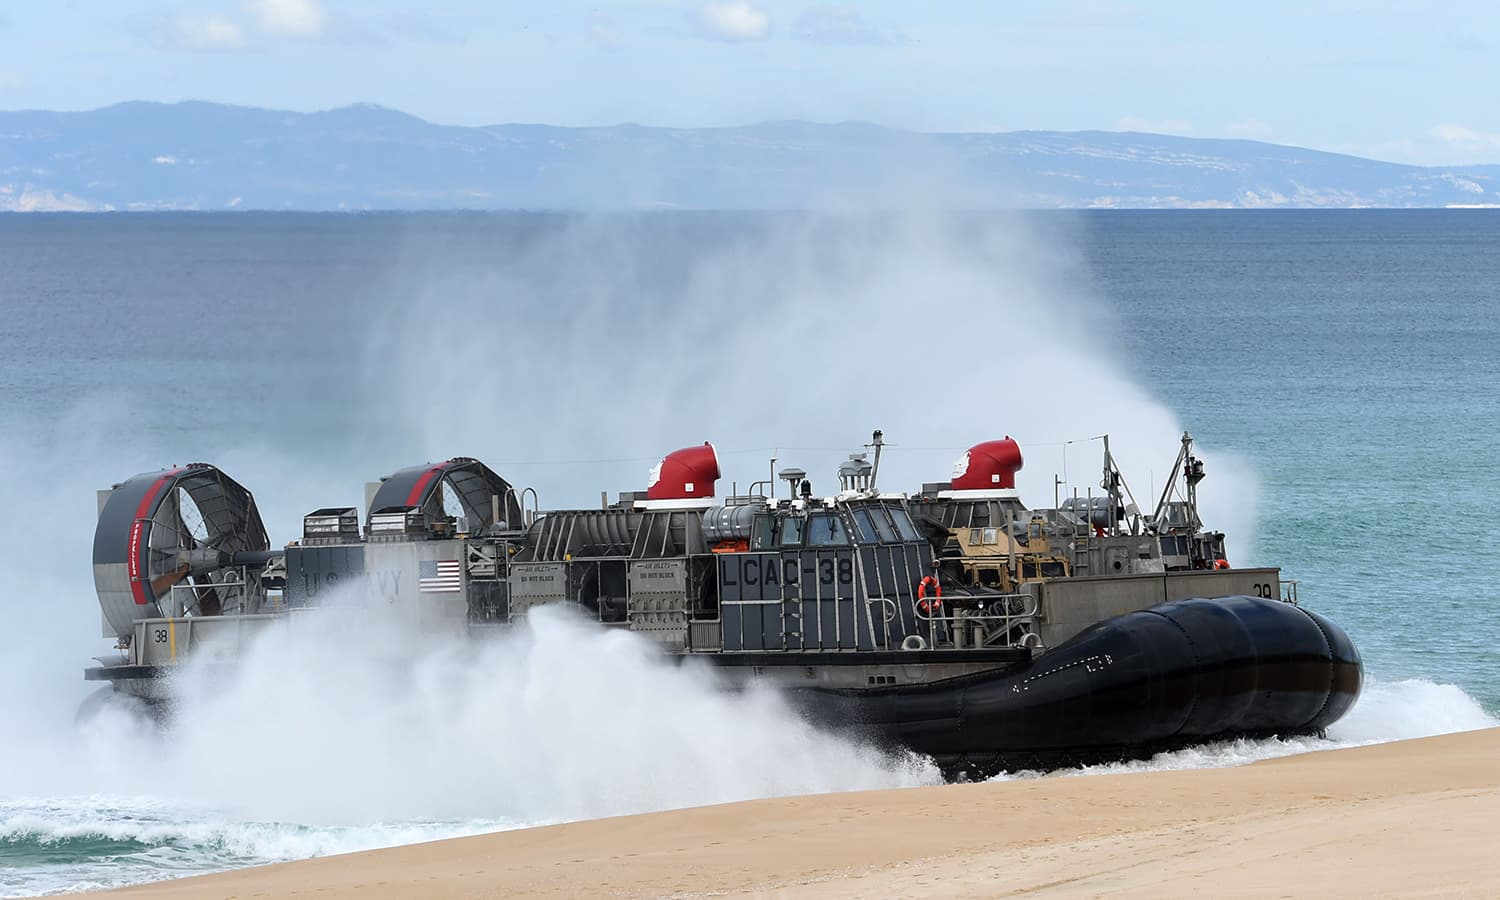 A US navy hovercraft lands on a beach after being deployes by the USS Arlington amphibious transport dock during the Nato's Trident Juncture exercise — AFP